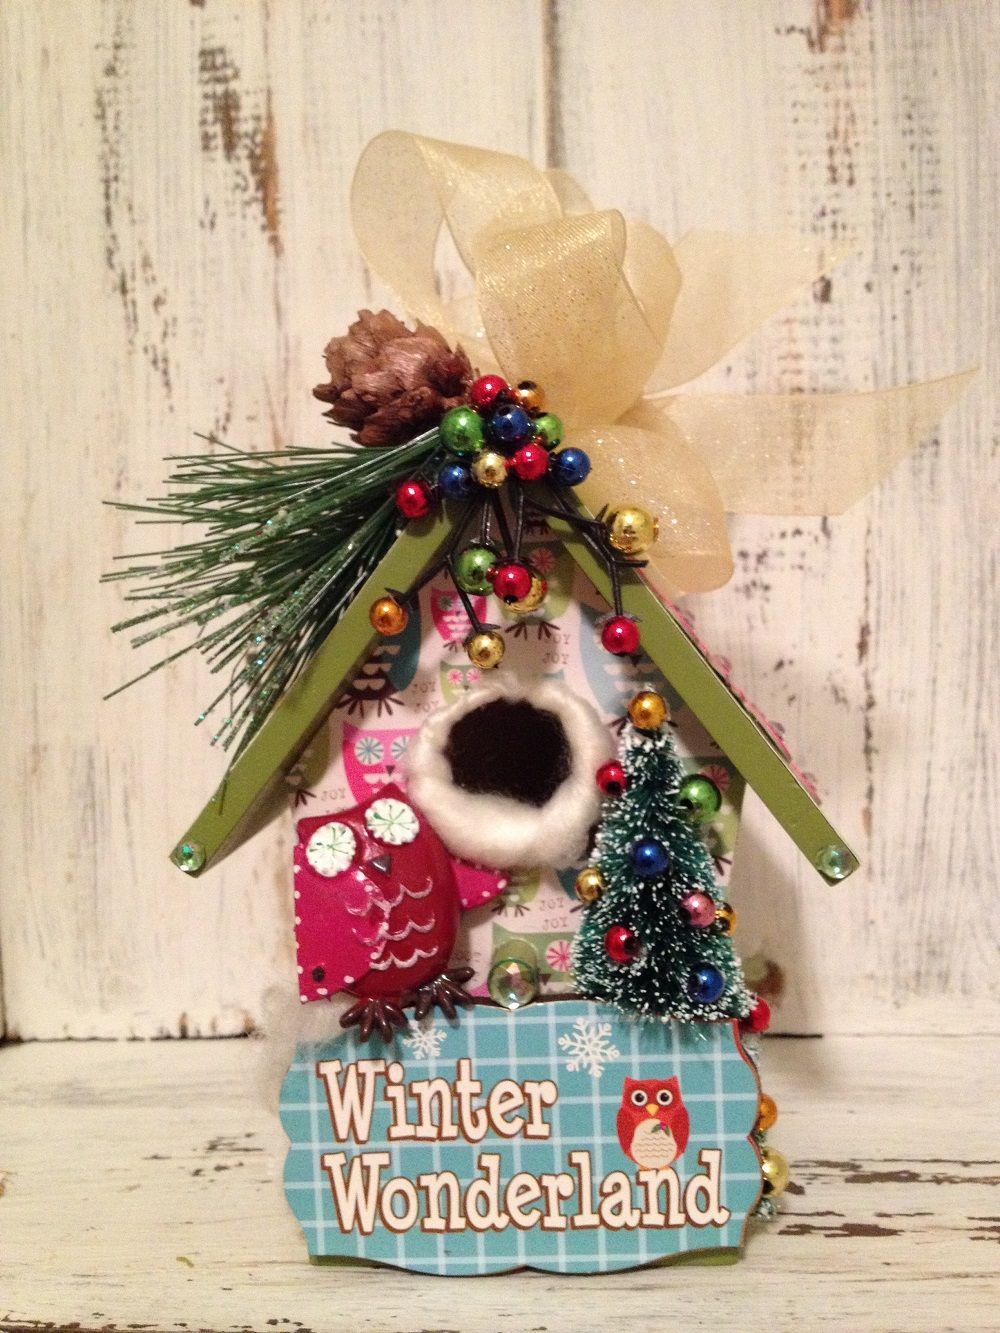 WINTER WONDERLAND Owl Birdhouse Christmas Ornament Decoration Gift | Birdhouse Gift Gallery